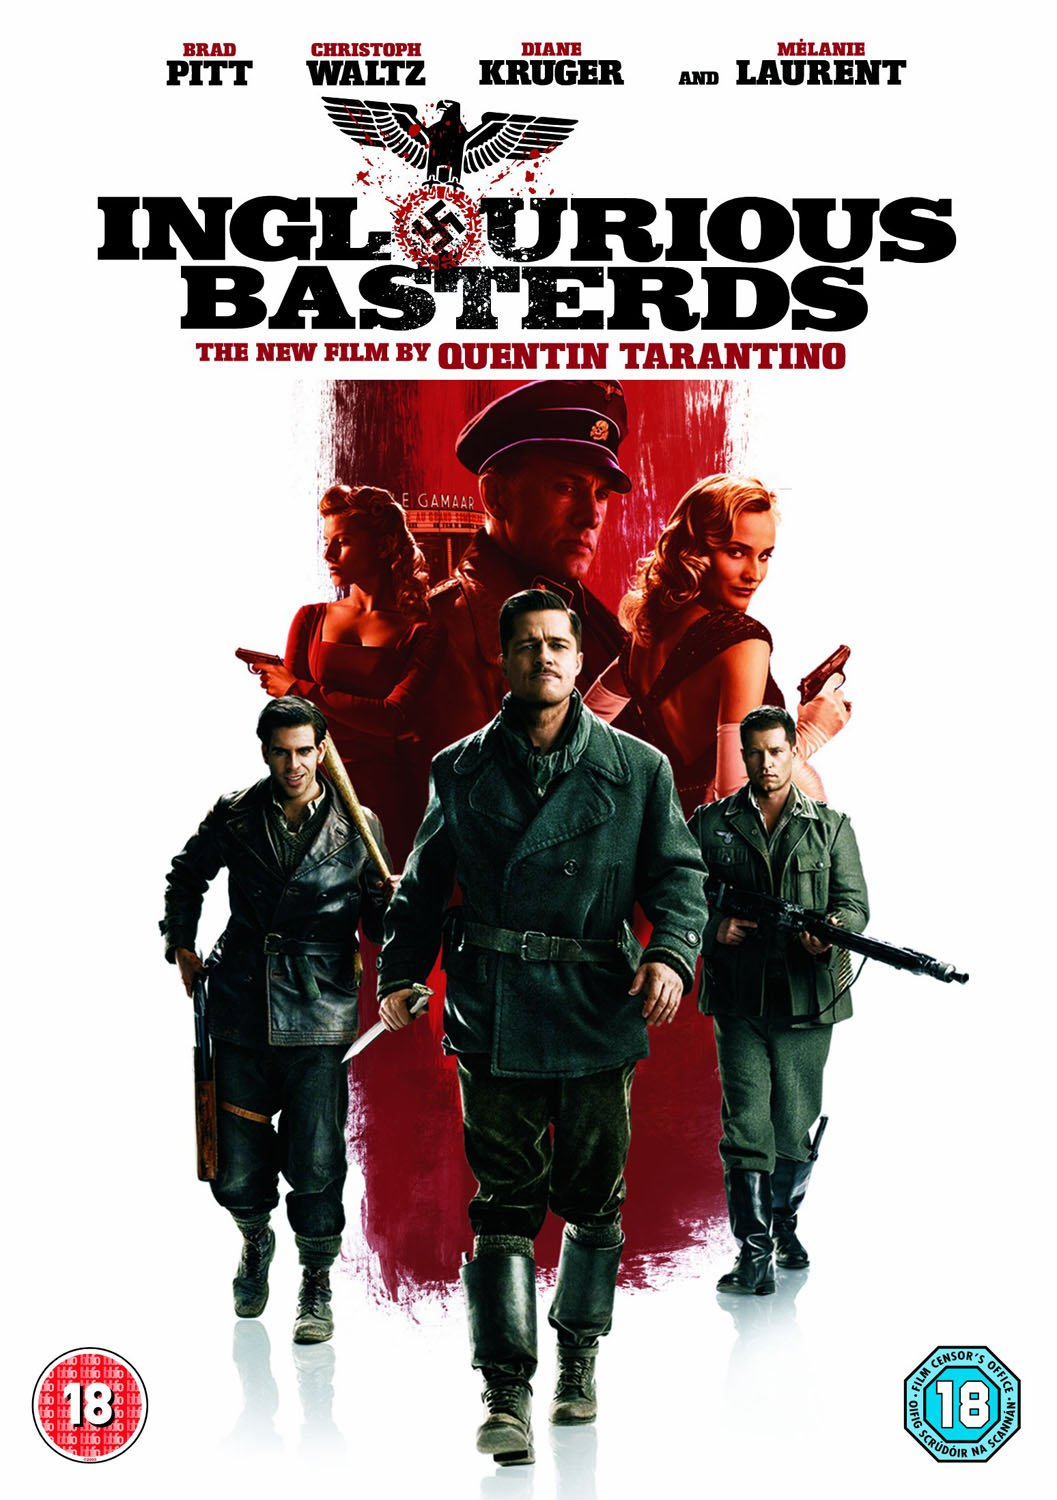 inglourious basterds dvd 2009 co uk brad pitt inglourious basterds dvd 2009 co uk brad pitt christoph waltz michael fassbender melanie laurent eli roth mike myers diane kruger